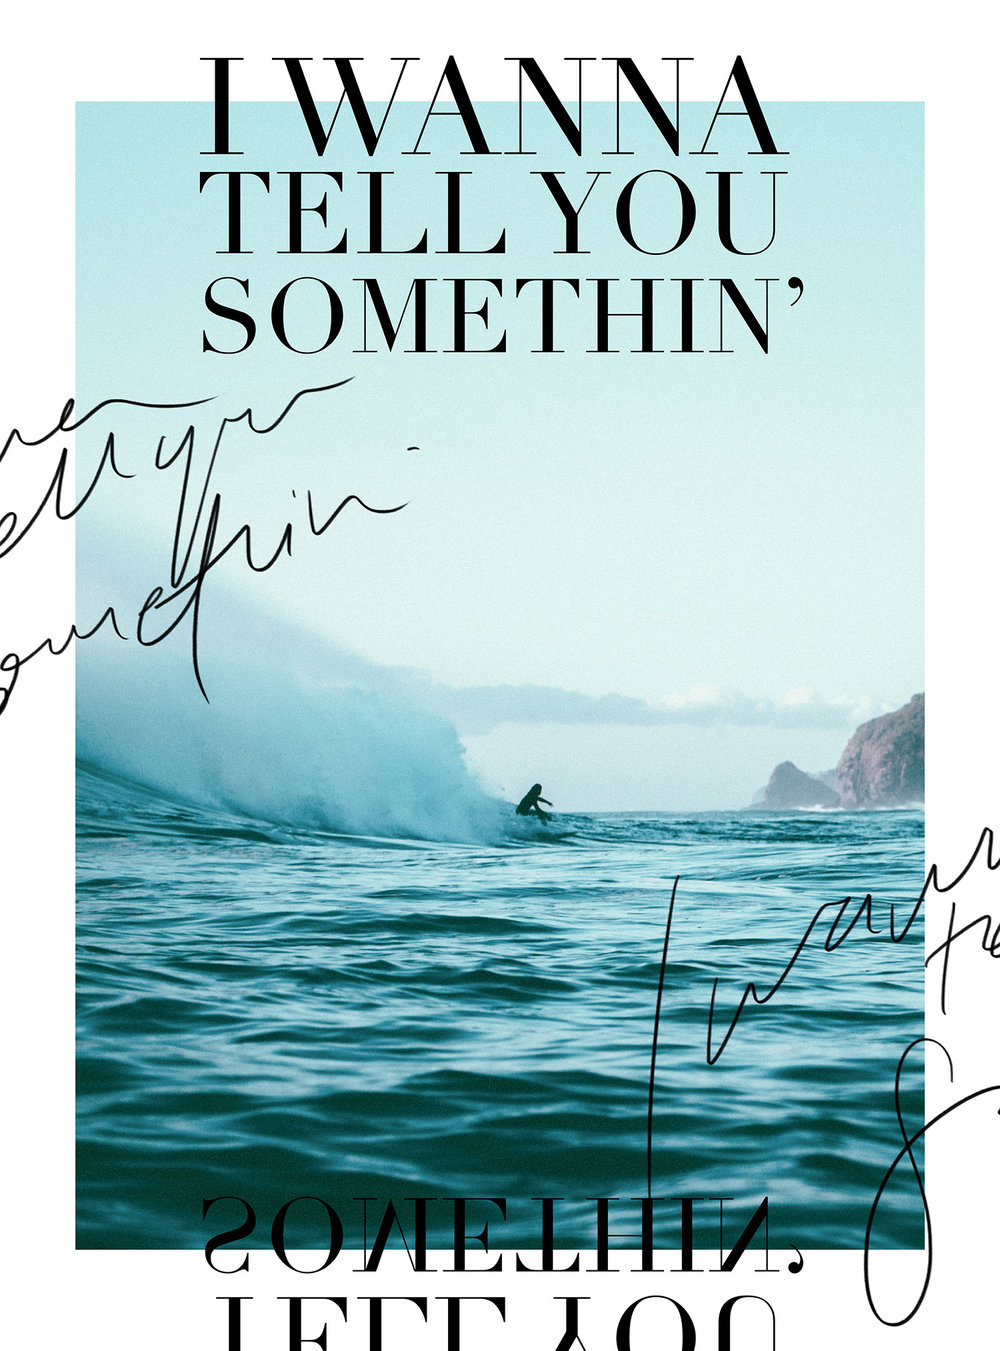 I wanna tell you somethin' | freshbysian.com